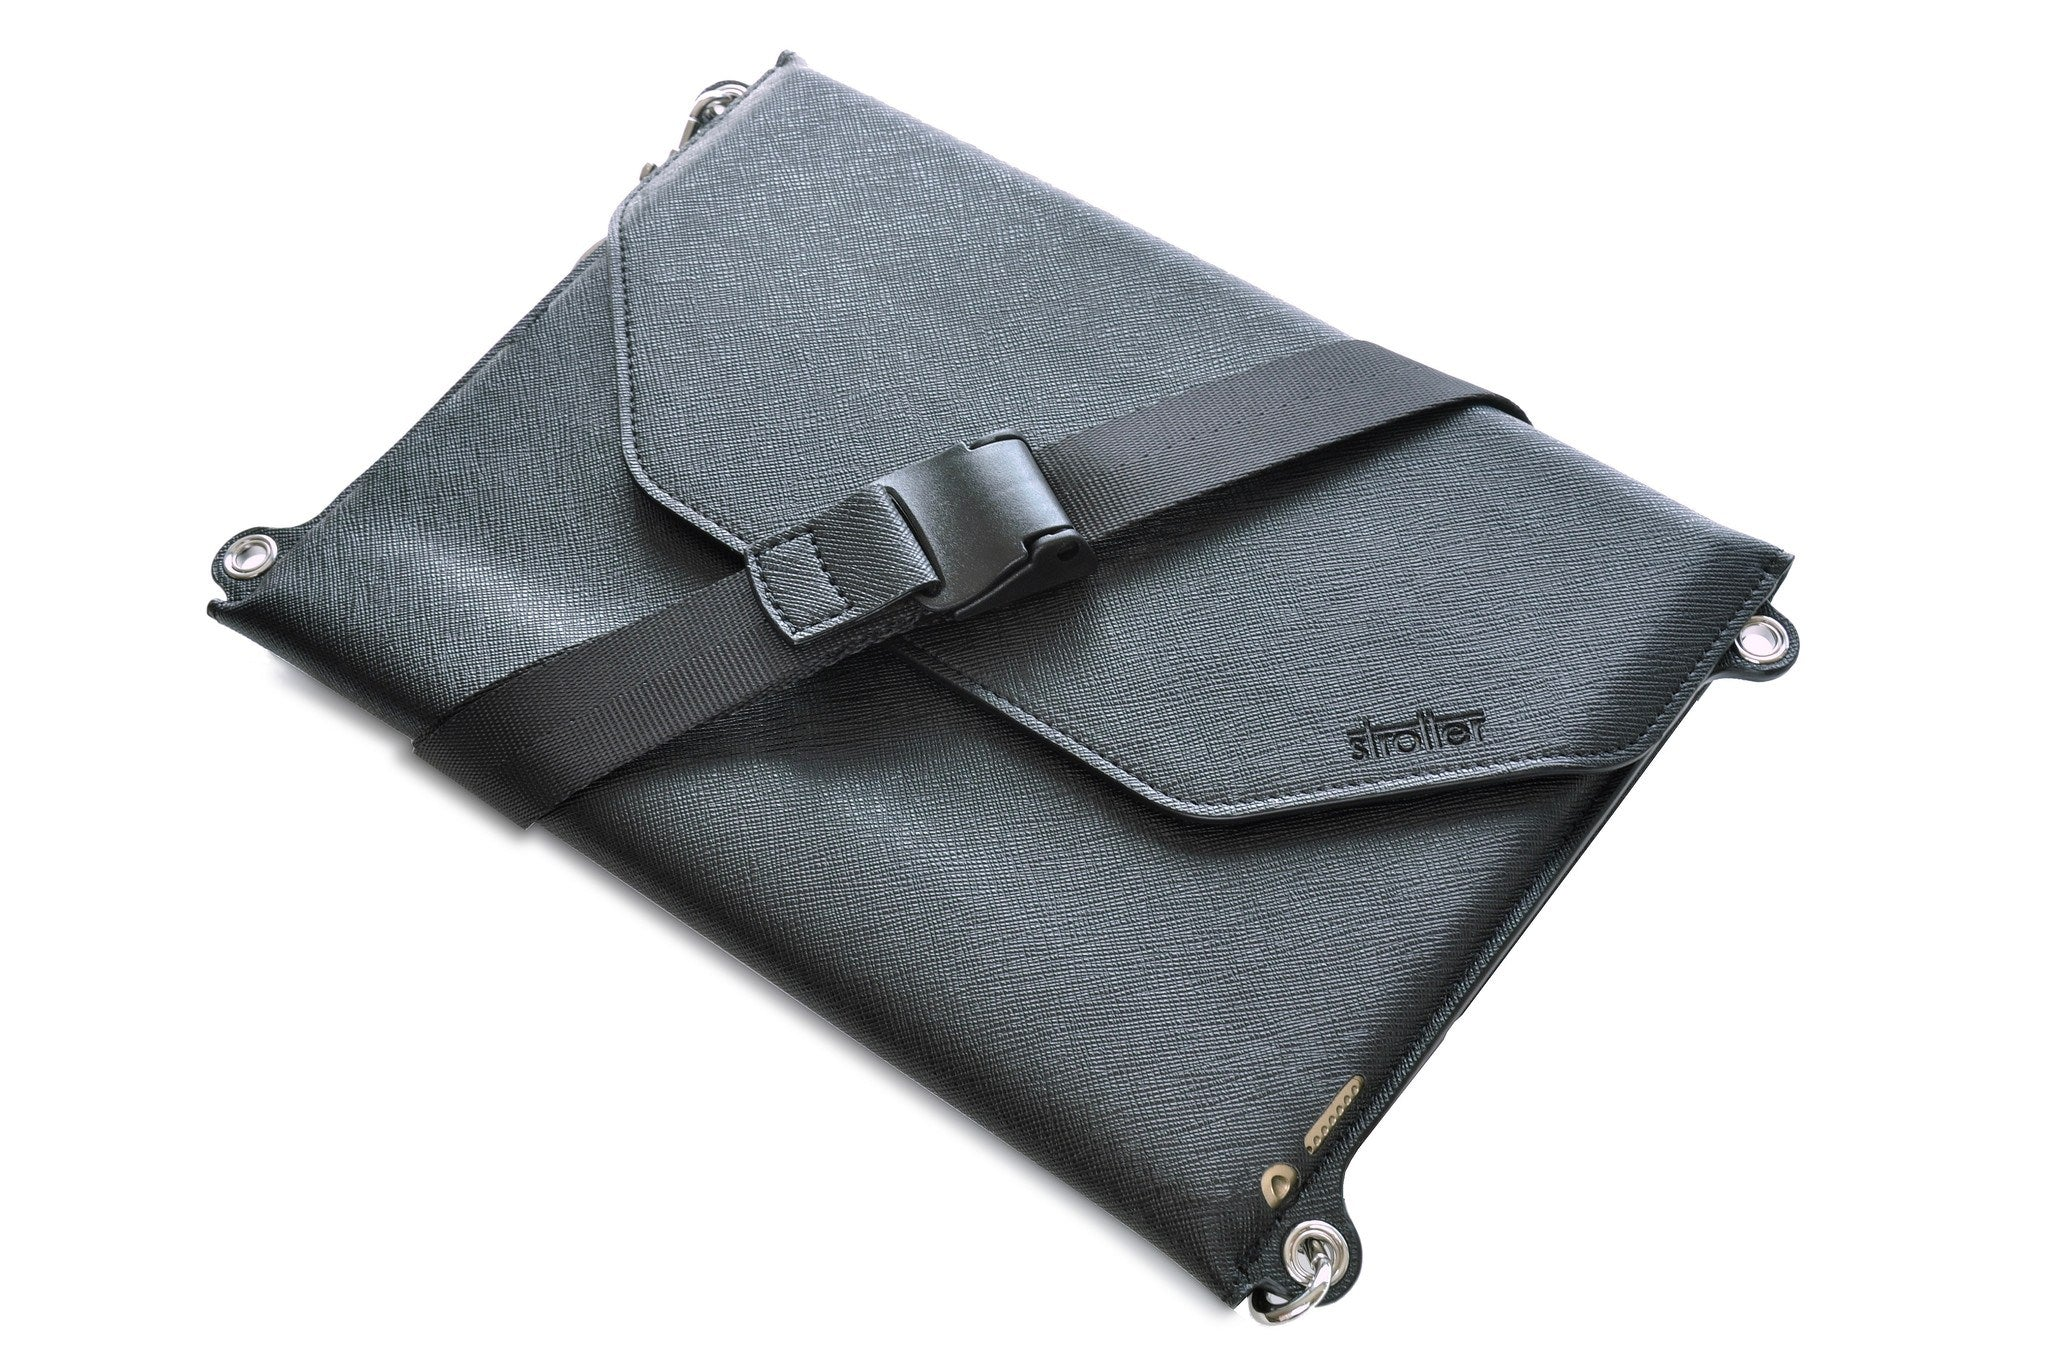 Synthetic leather carrying case with shoulder strap for iPad Air